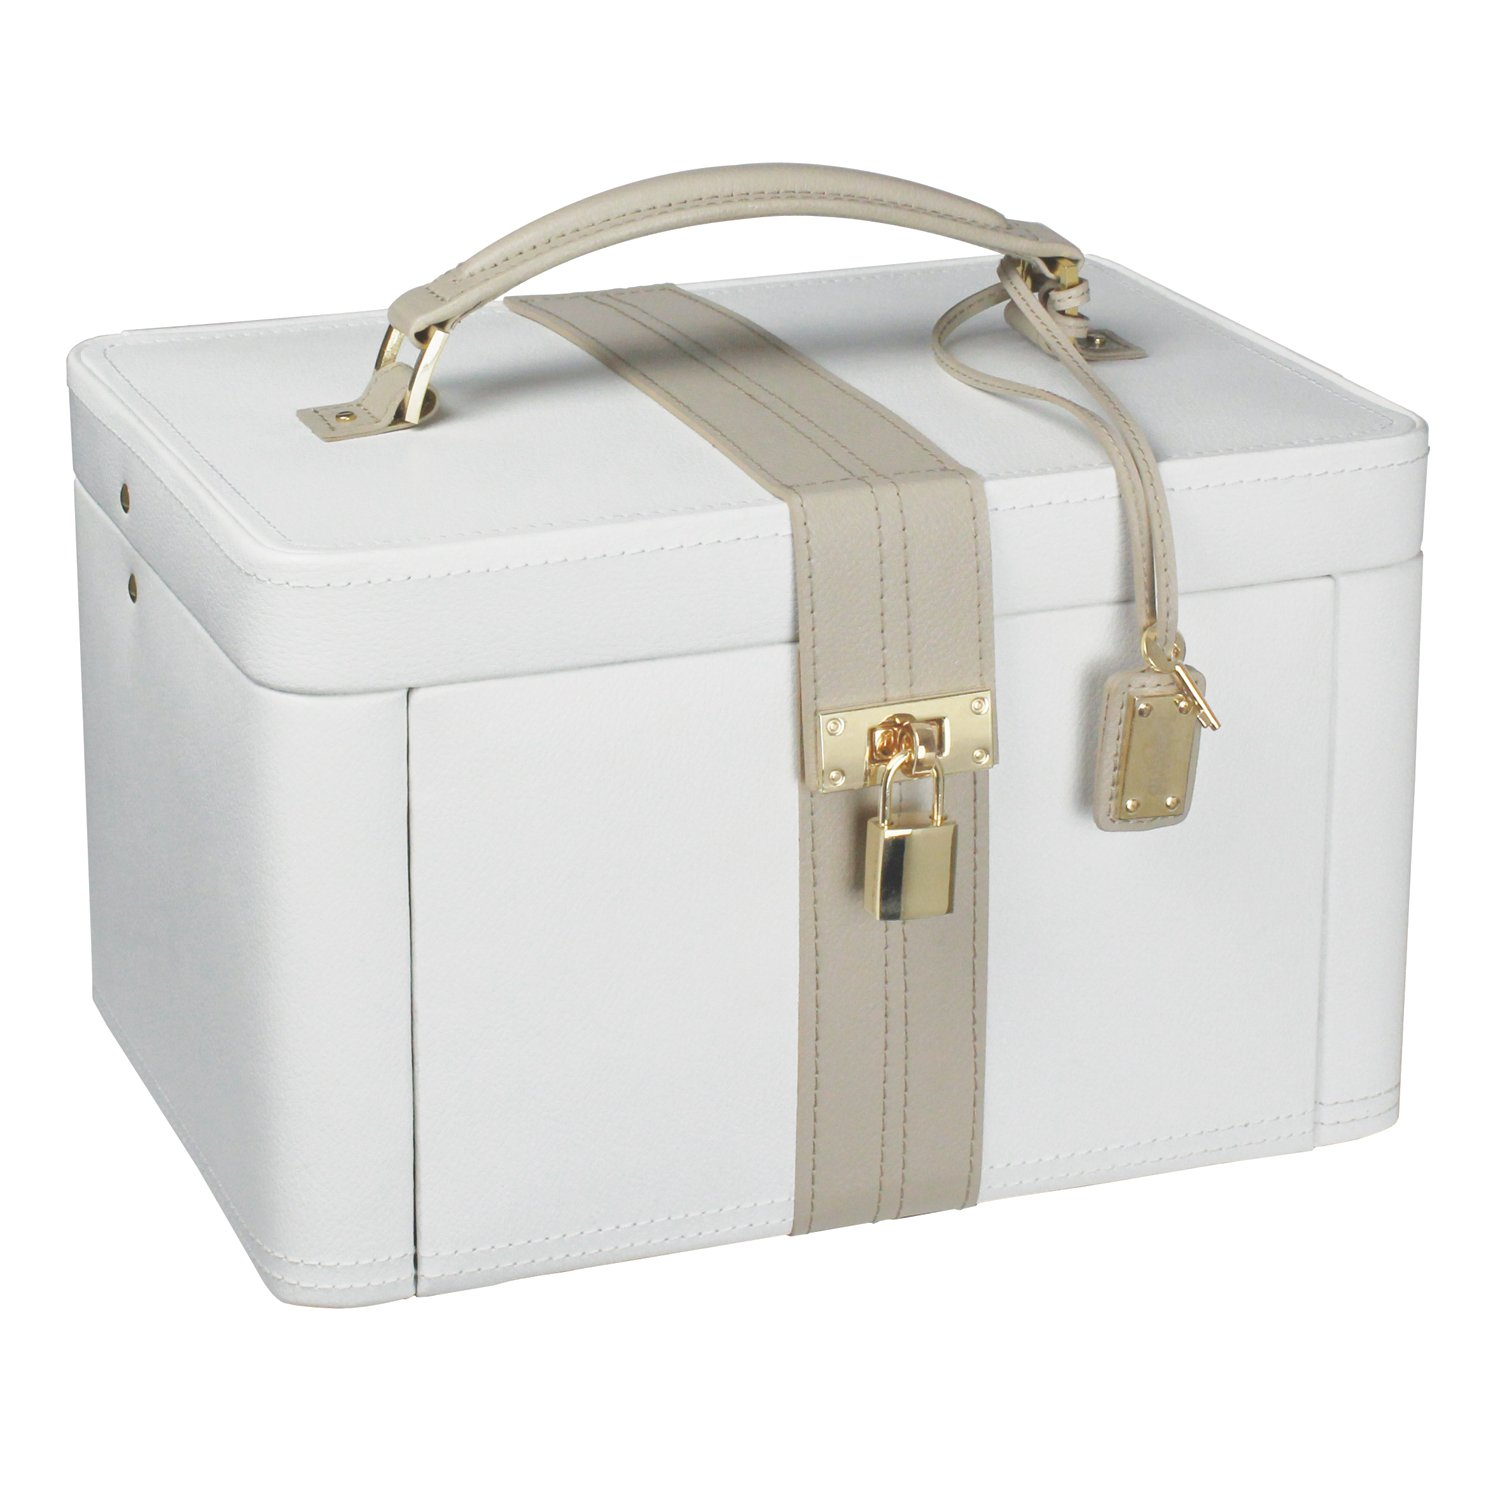 Dulwich Designs jewellery organiser |cream & mink two-tone large ...